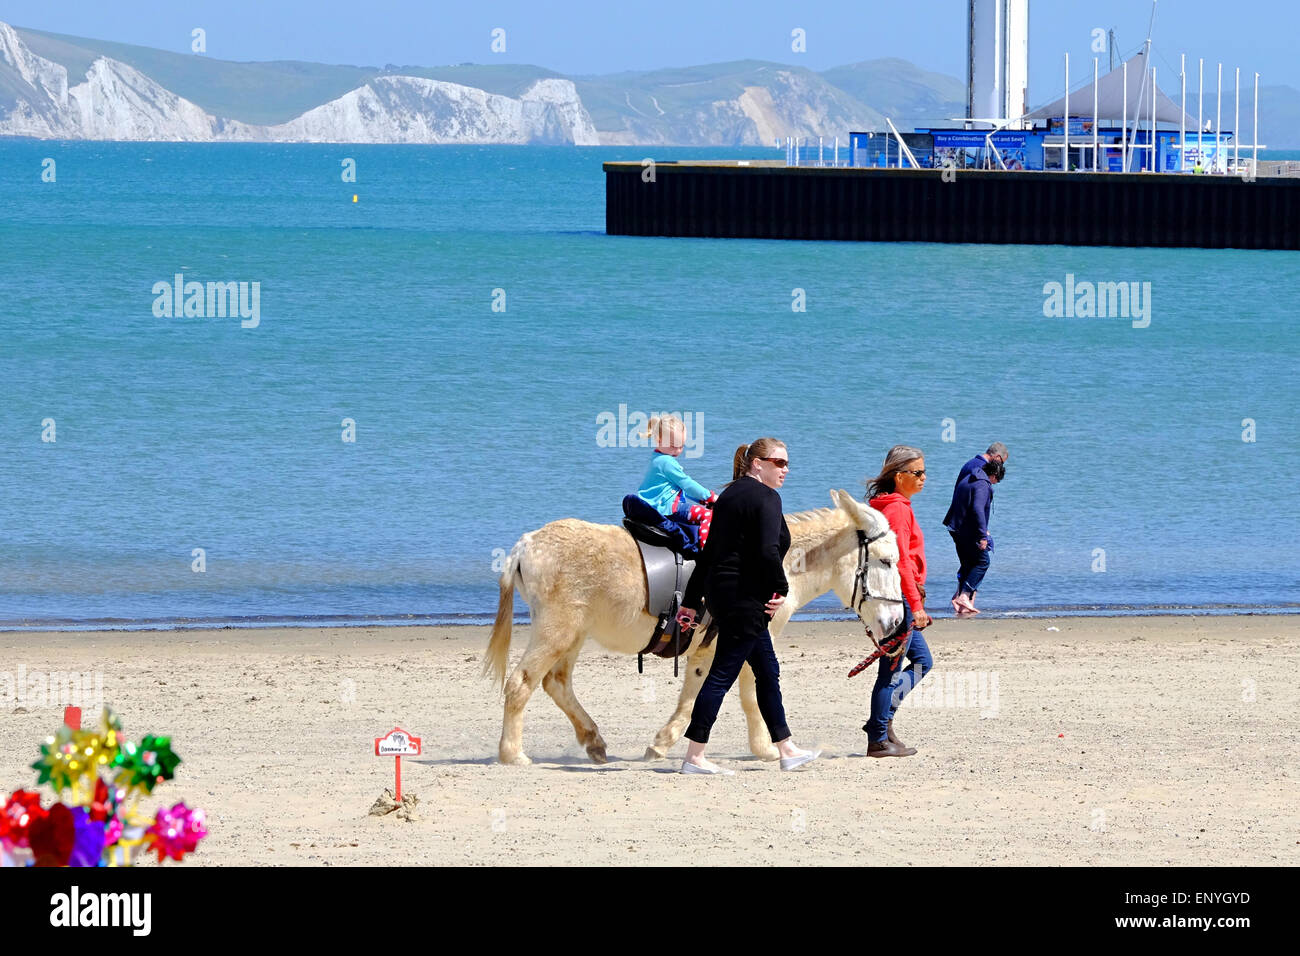 Weymouth, Dorset, UK. 12 May 2015. As the sunshine returns to the South Coast holliday makers enjoy a traditional - Stock Image